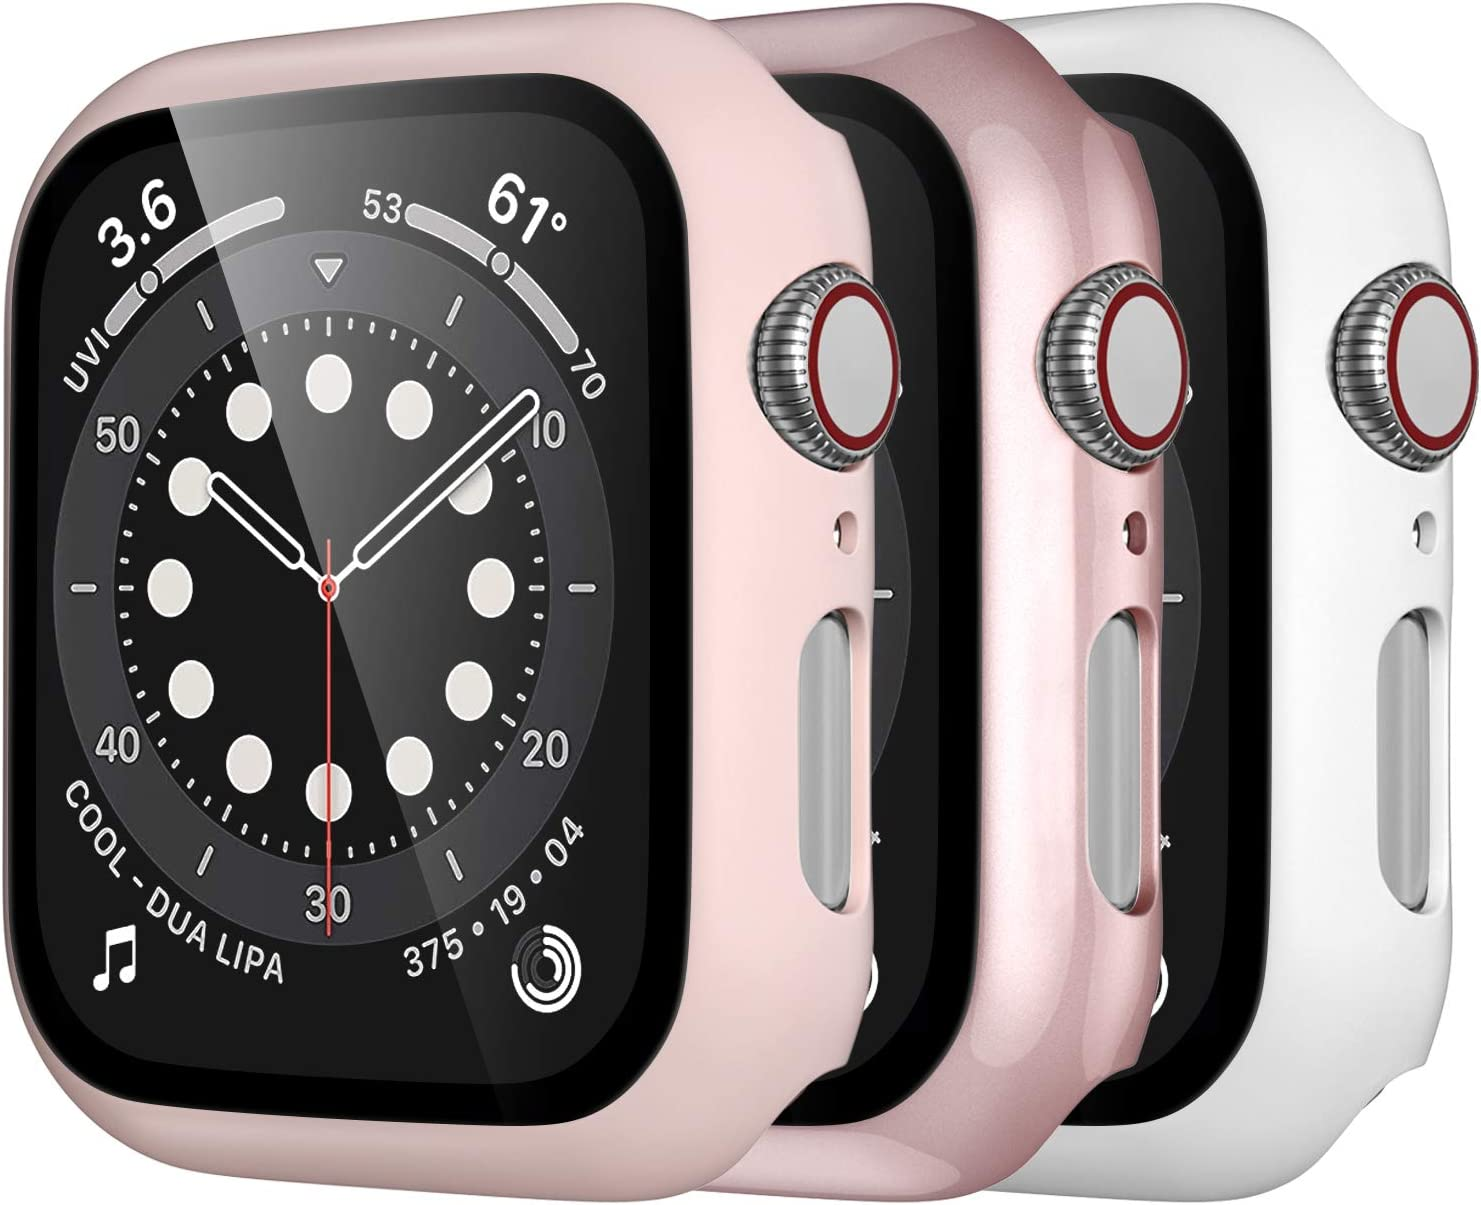 Mastten 3-Pack Case Compatible with Apple Watch Case Series 3 42mm, Bumper Protective Cover Compatible with Apple Watch Screen Protector 42mm with HD Tempered Glass, Rose Gold, Pink, White